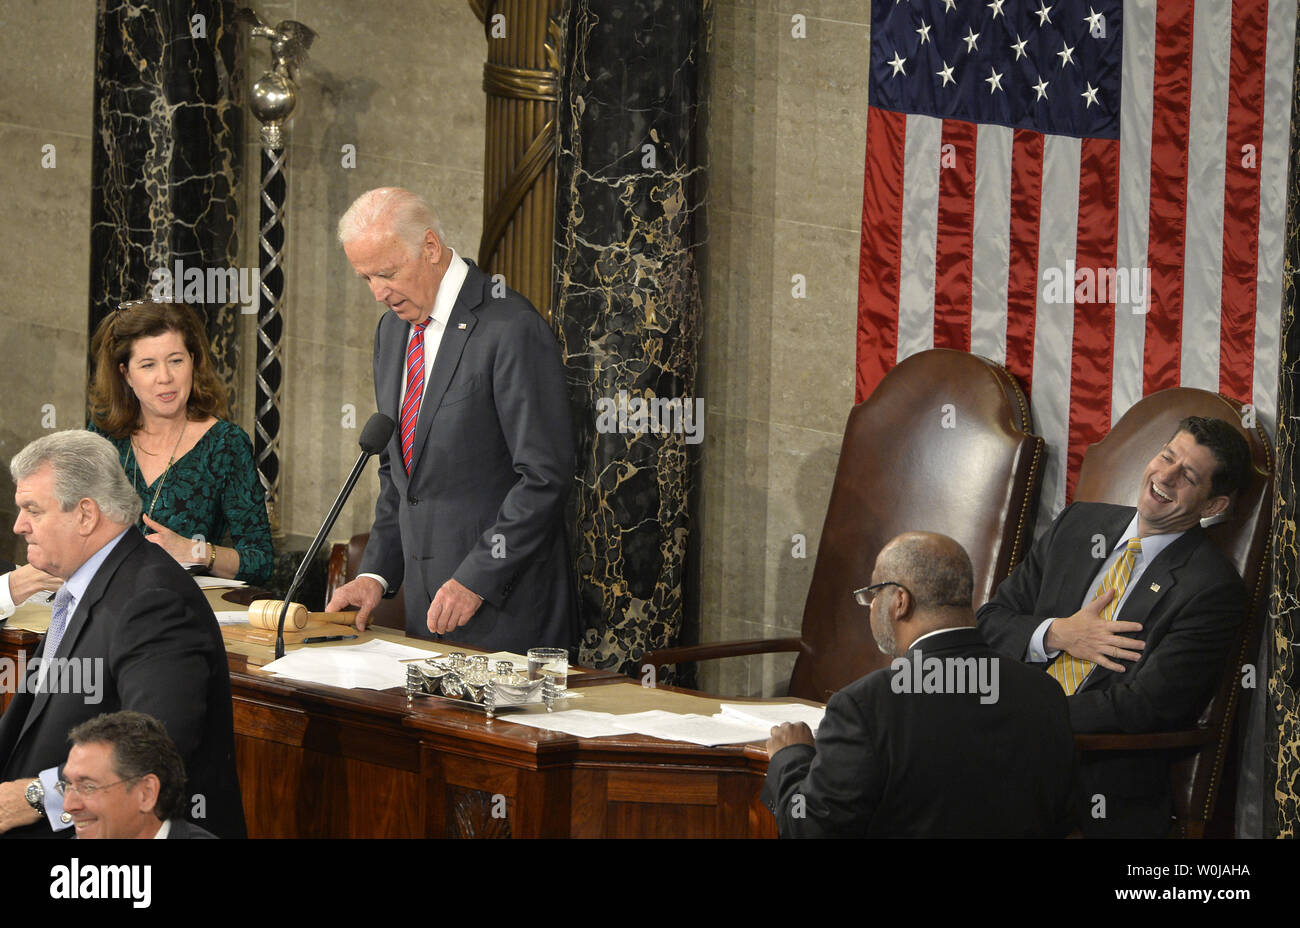 Speaker Paul Ryan (R-WI), (R), reacts in laughter after Vice President Joe Biden (L) said 'It's Over' in response to a floor protest during the procedure to count and validate the votes of the Electoral College on the floor of the House at the U.S. Capitol, January 6, 2017, in Washington, DC. The procedure, established by the Constitution, finalized Donald J. Trump and Mike Pence as the president and vice president.                 Photo by Mike Theiler/UPI - Stock Image